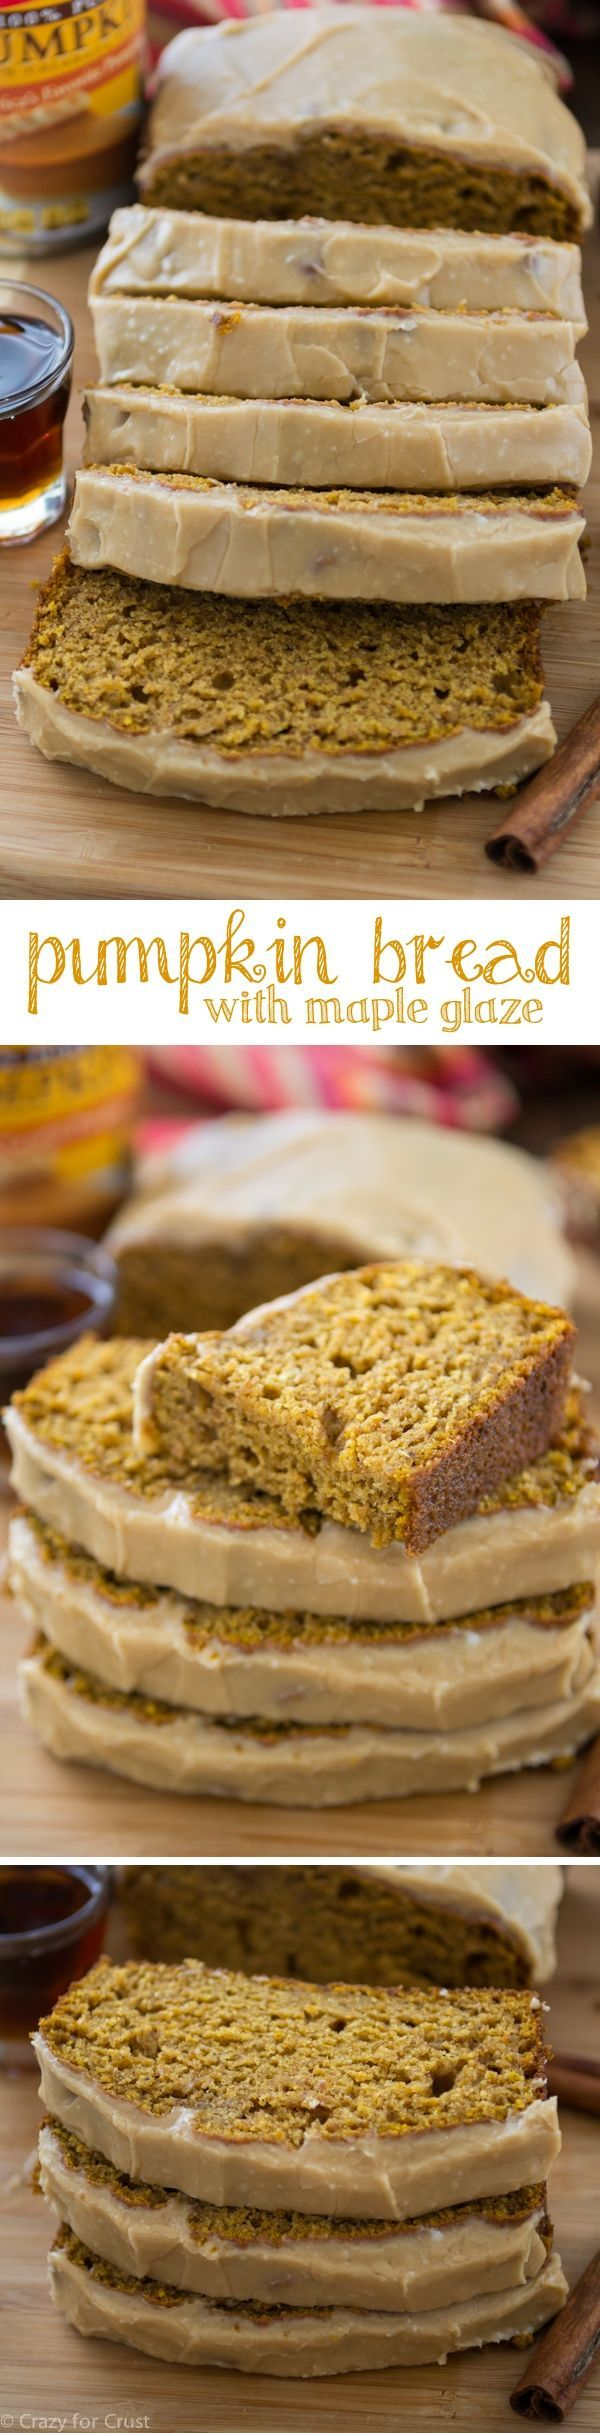 This Pumpkin Bread with Maple Glaze is soft and moist and the perfect easy pumpkin bread recipe!